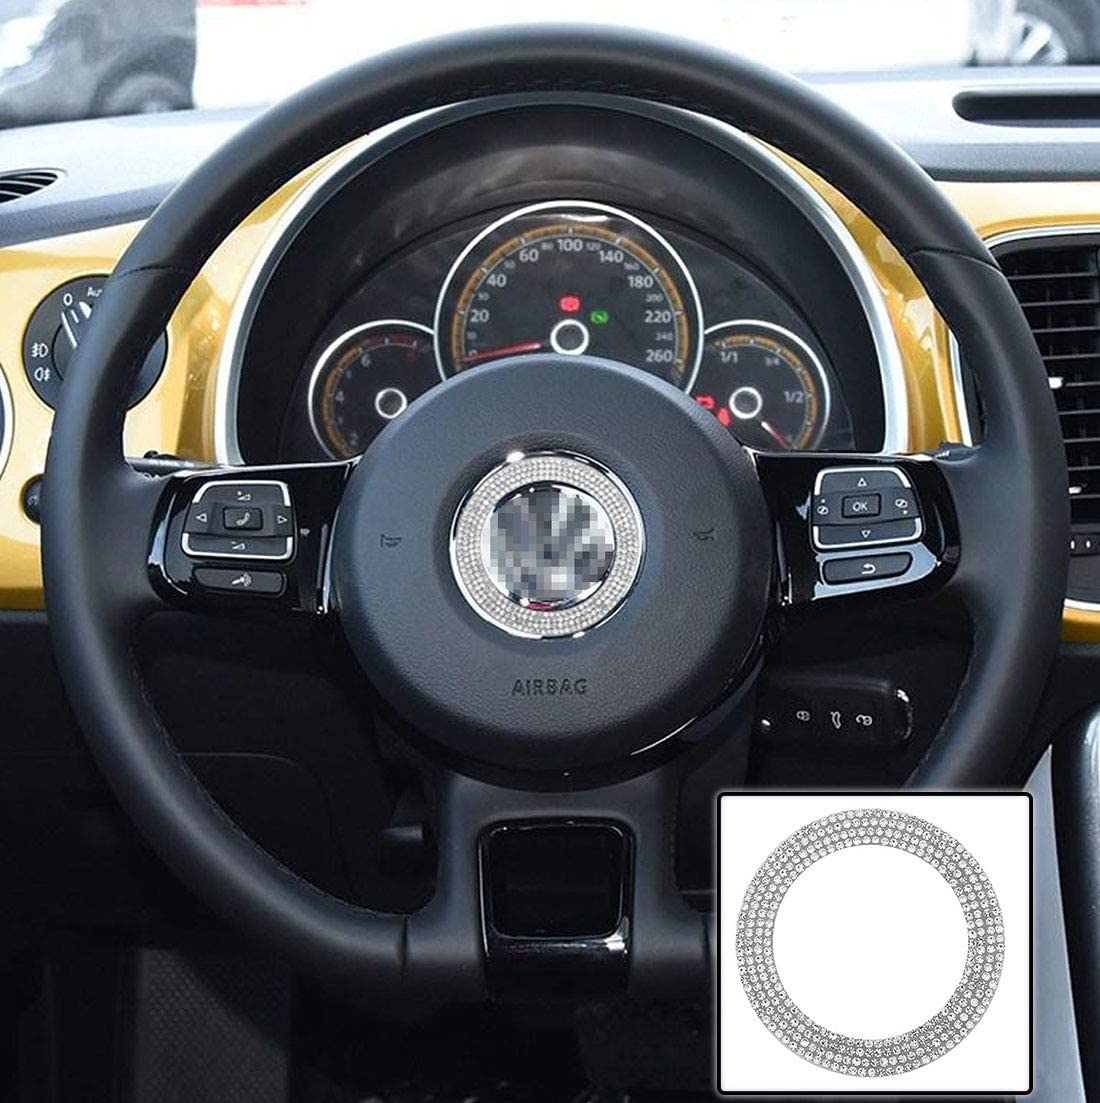 TopDall Steering Wheel Bling Crystal Shiny Int Diamond Accessory Luxury SEAL limited product goods